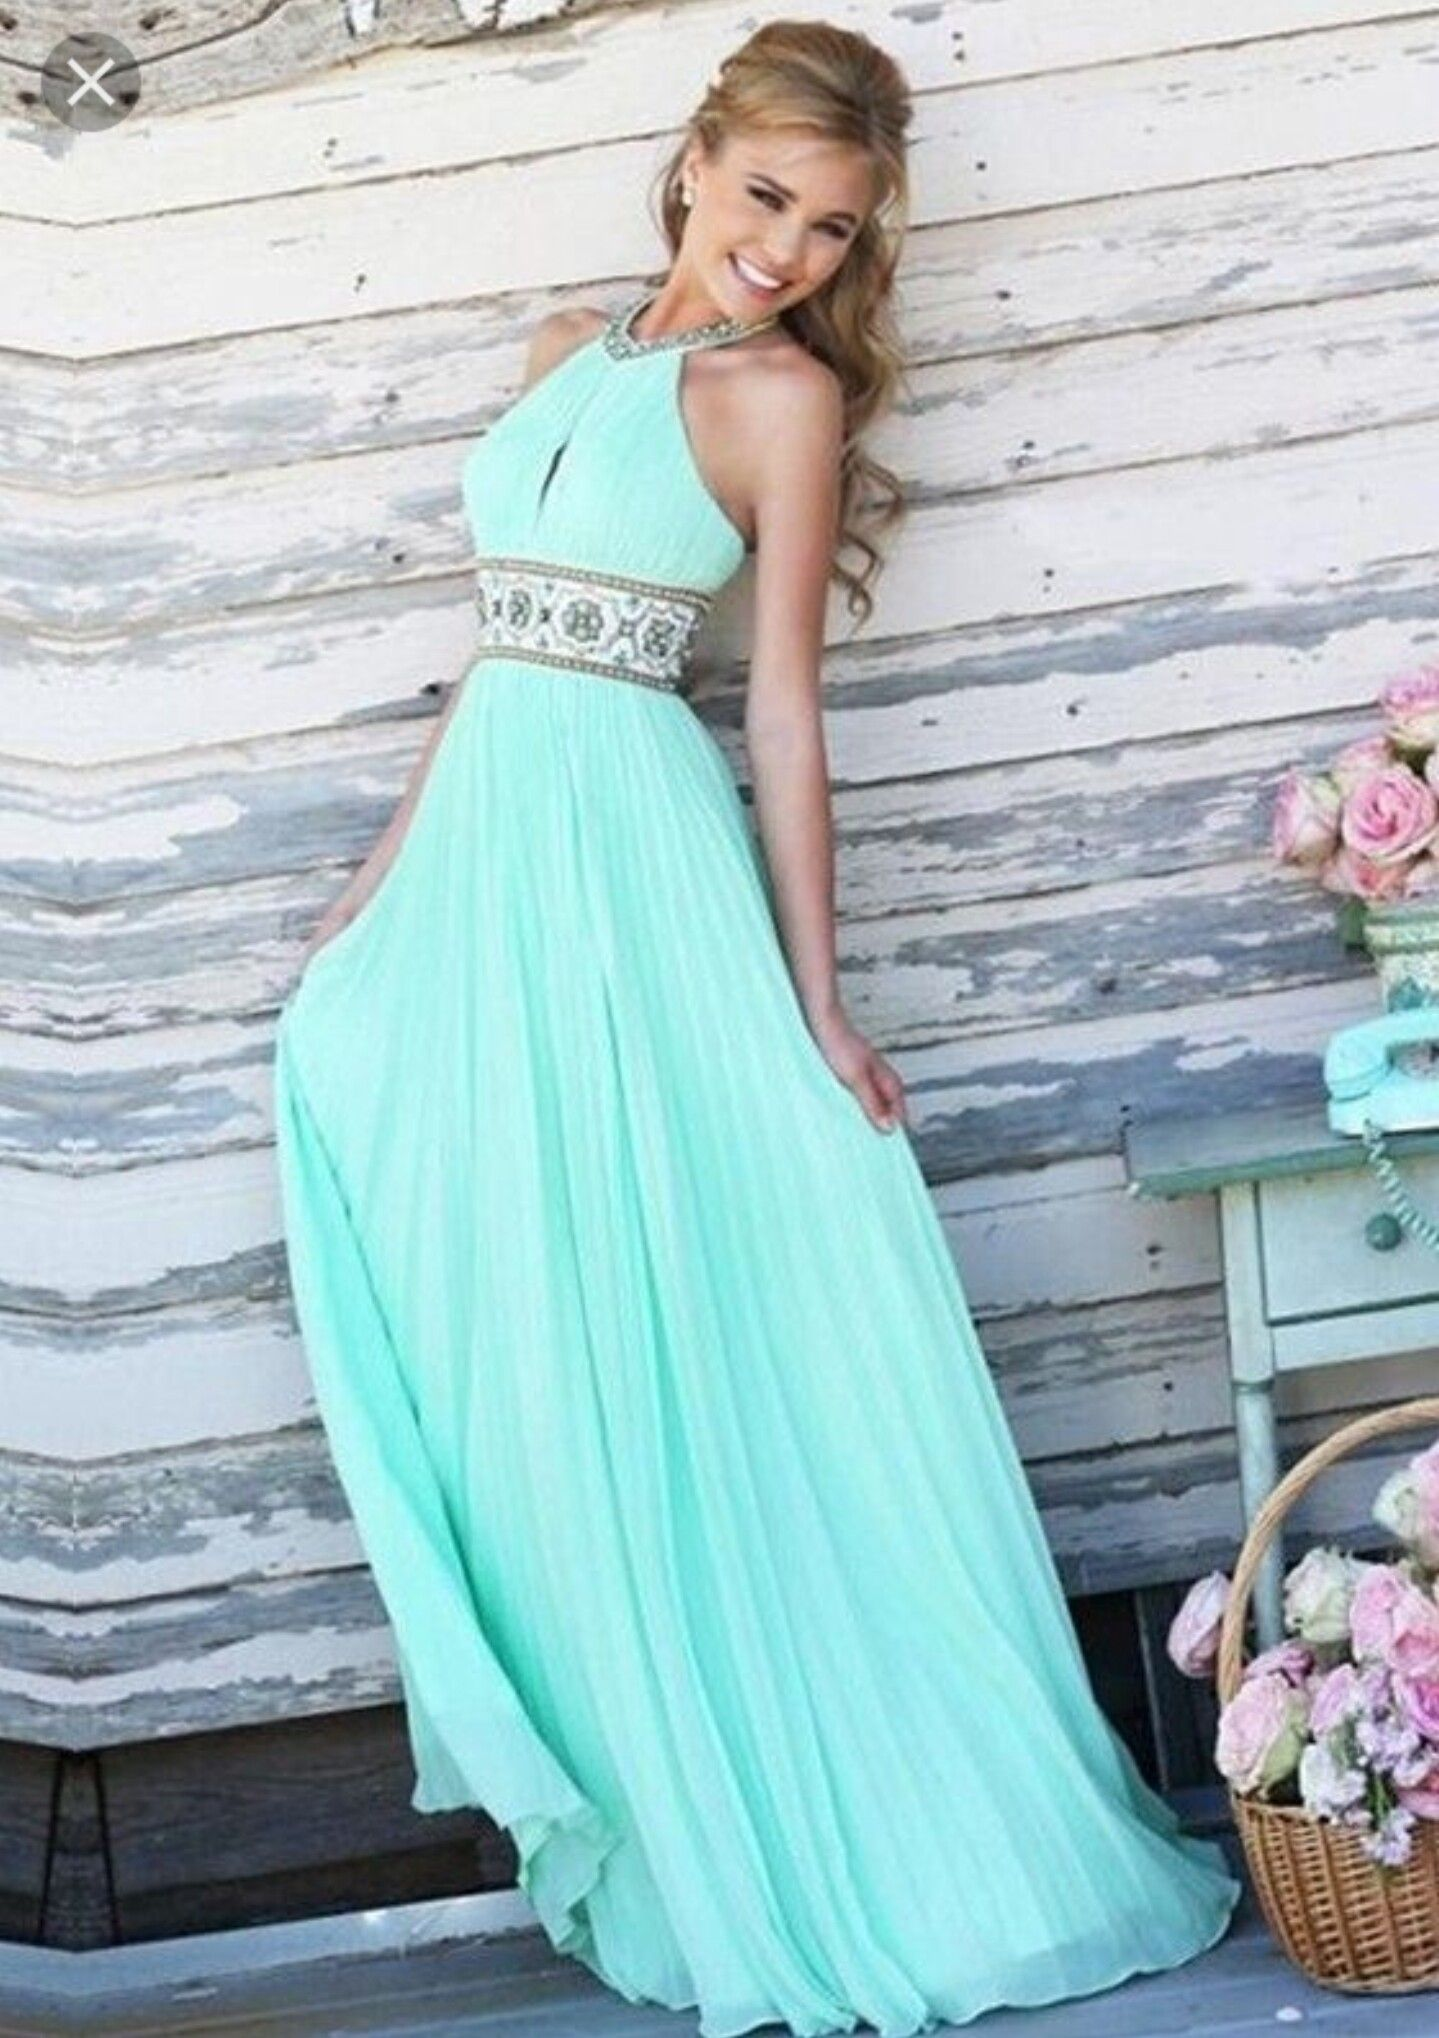 Here is a baby blue prom dress i think itus so pretty i would like